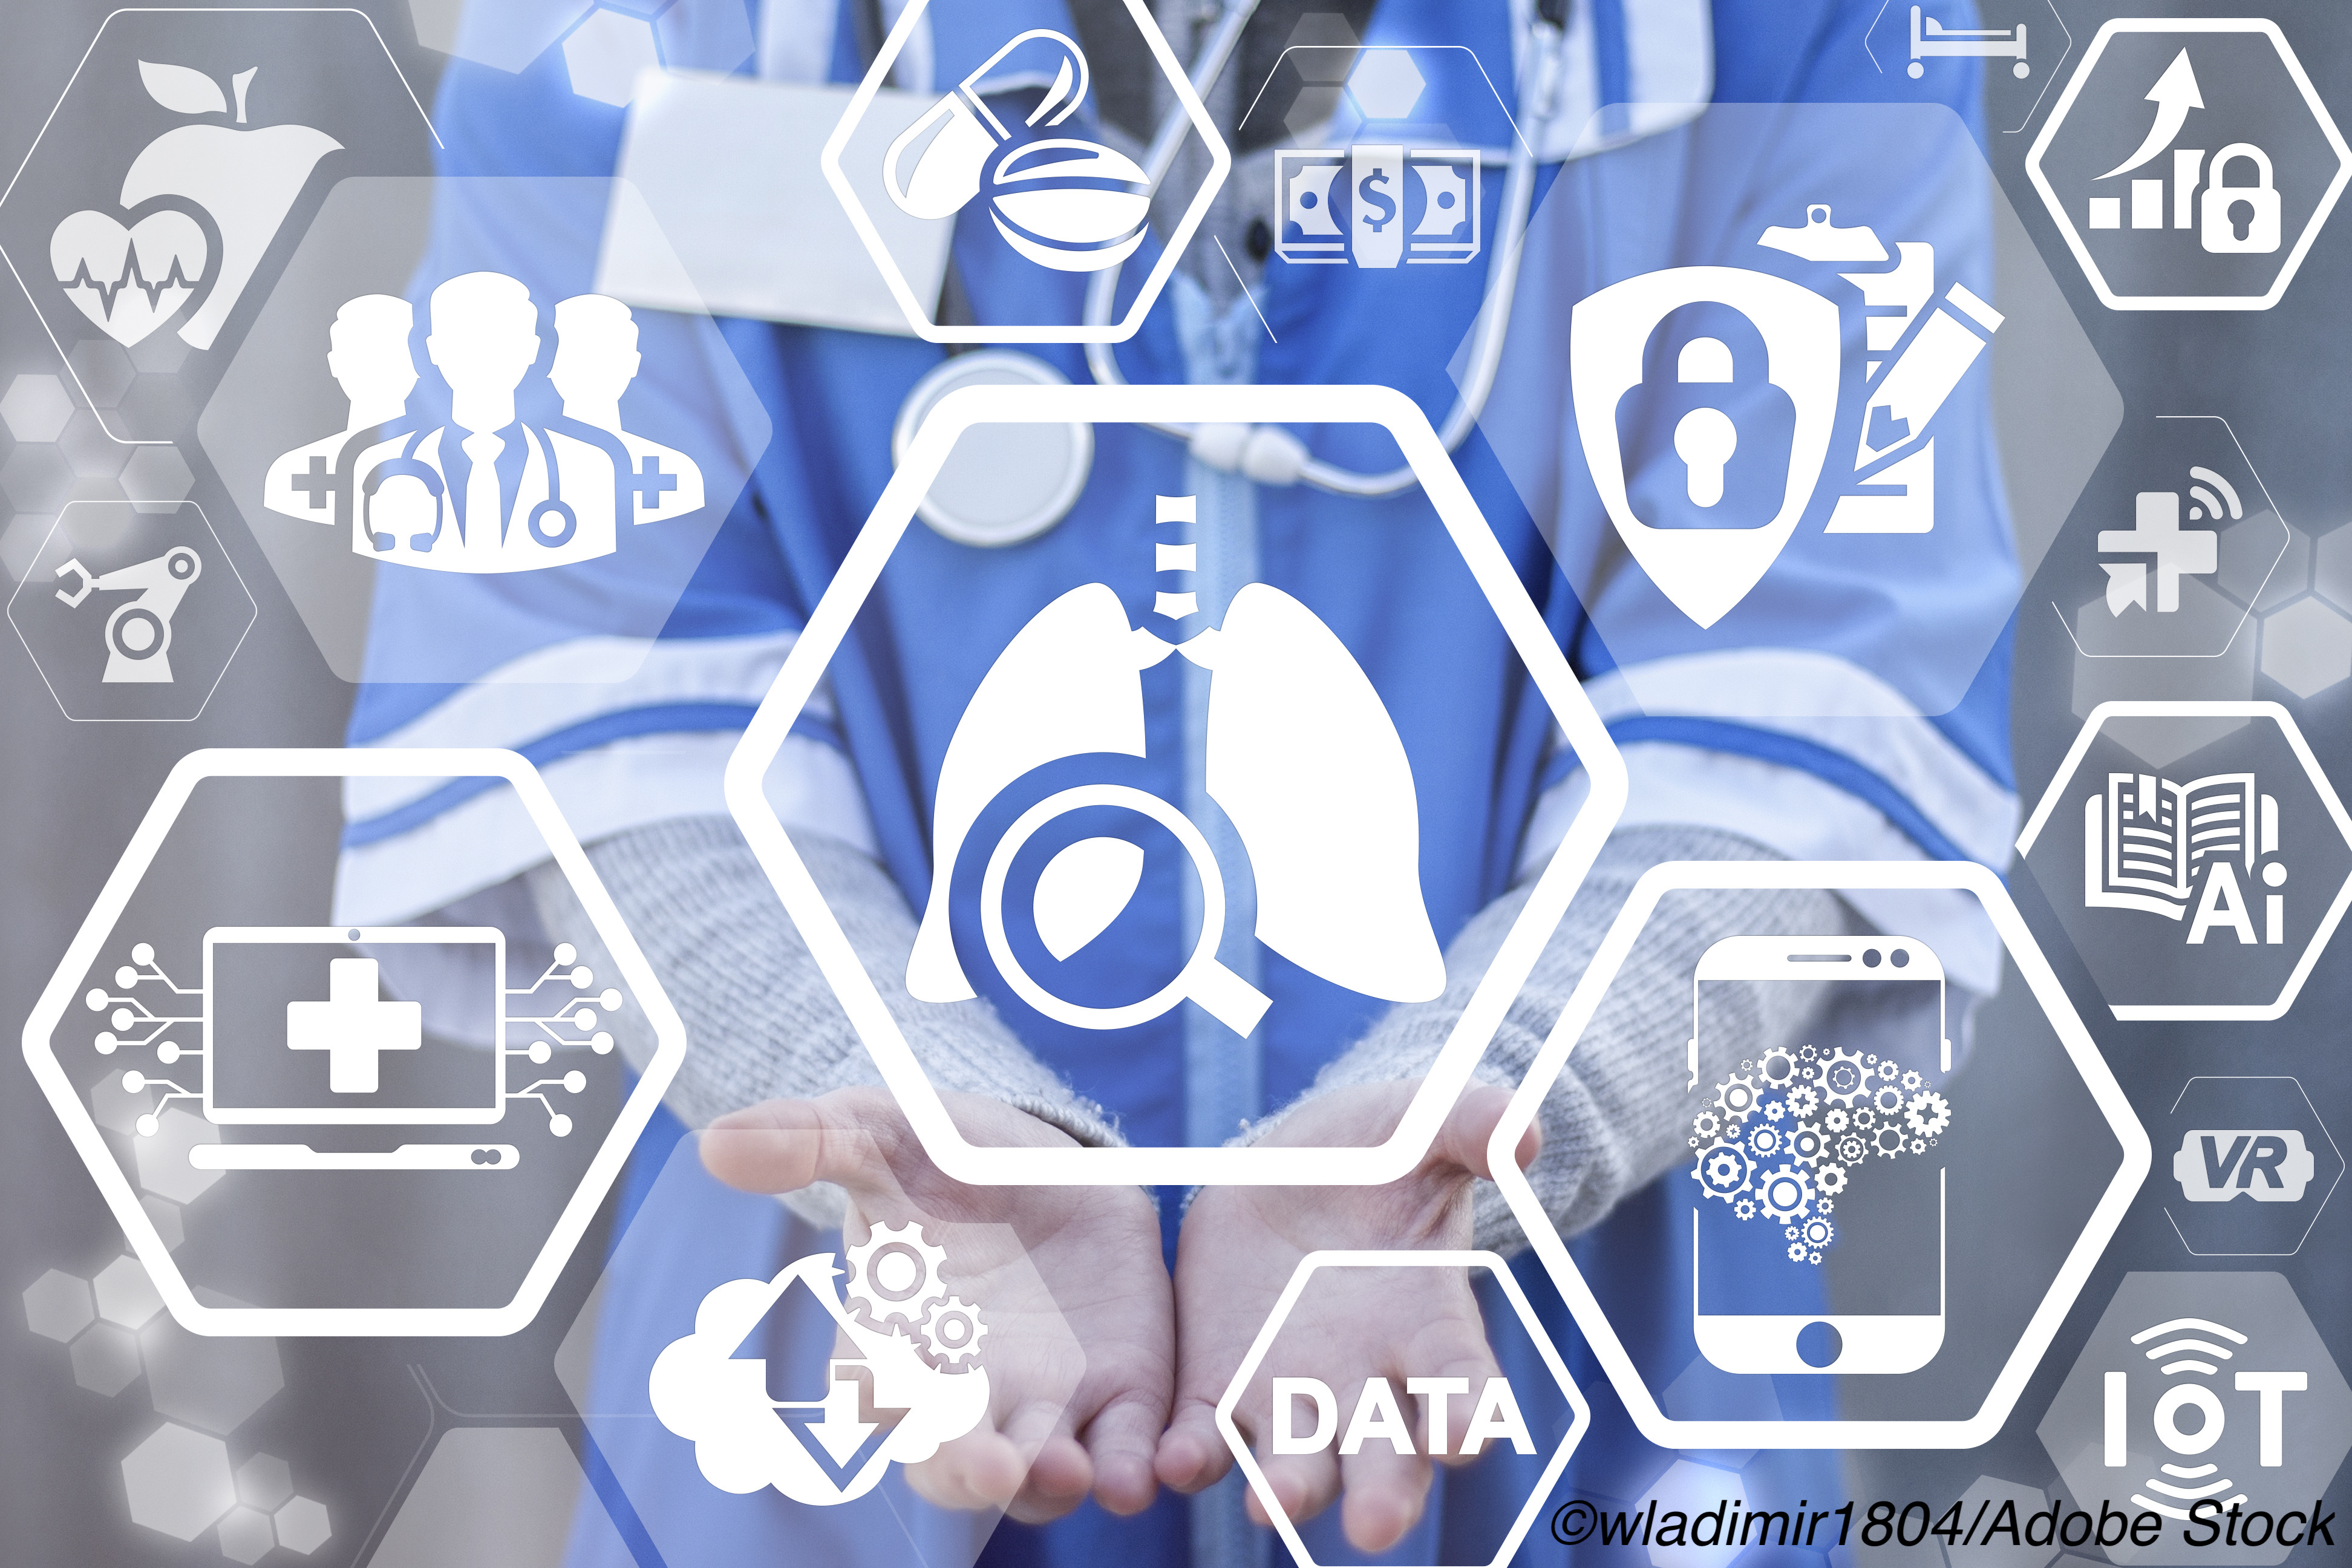 AI Outperformed Standard Eligibility Criteria in Predicting Lung Cancer Risk